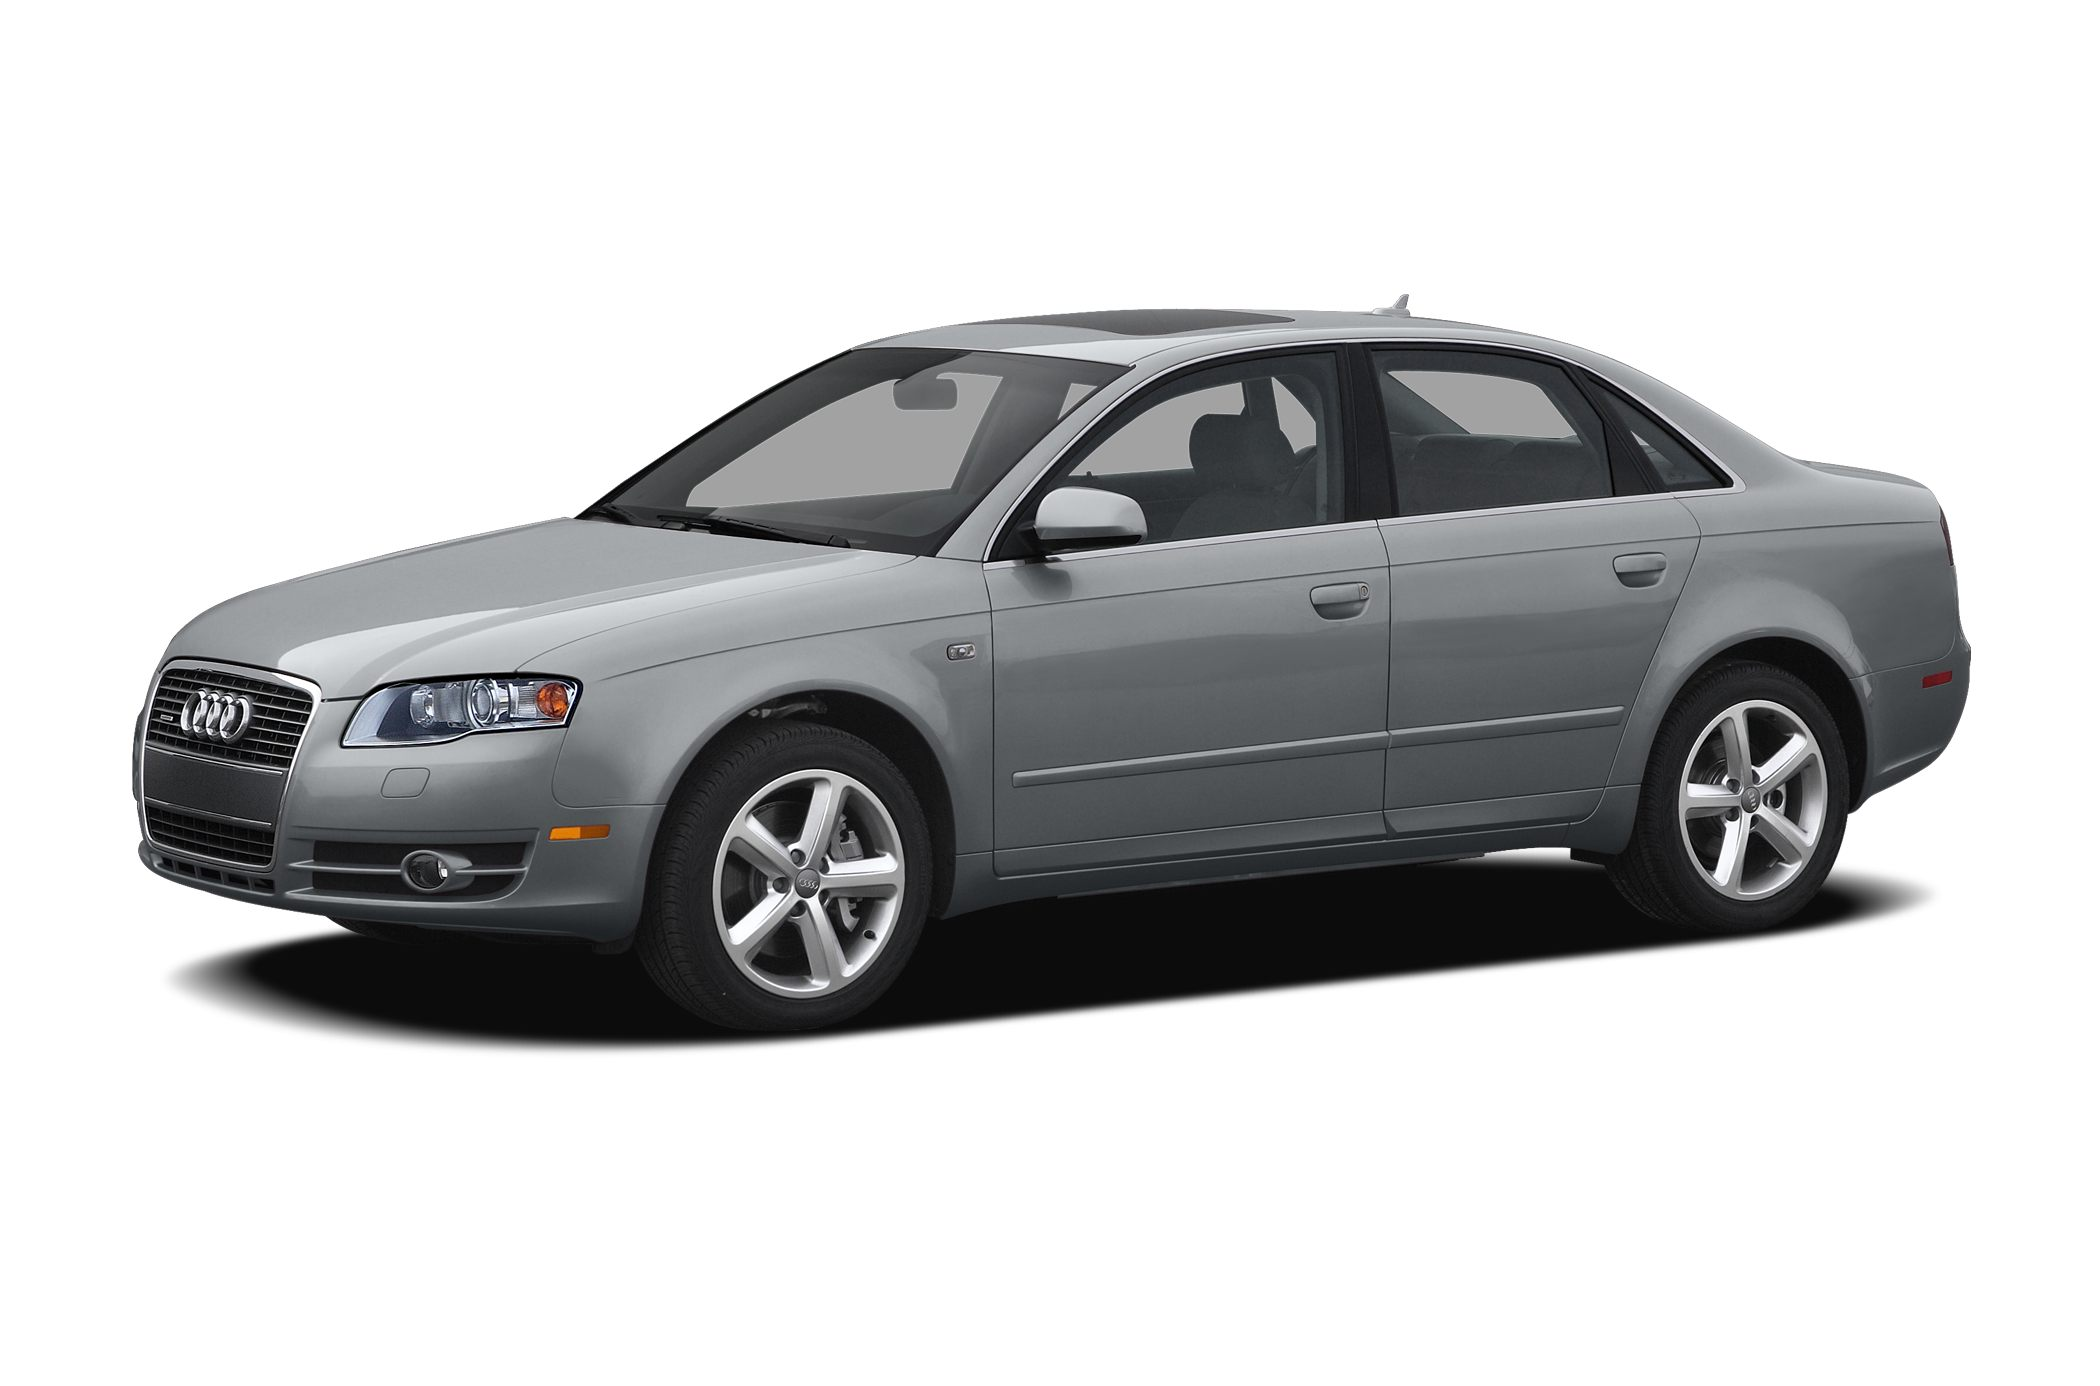 2007 Audi A4 2.0T Quattro Sedan for sale in Bronx for $7,995 with 84,076 miles.